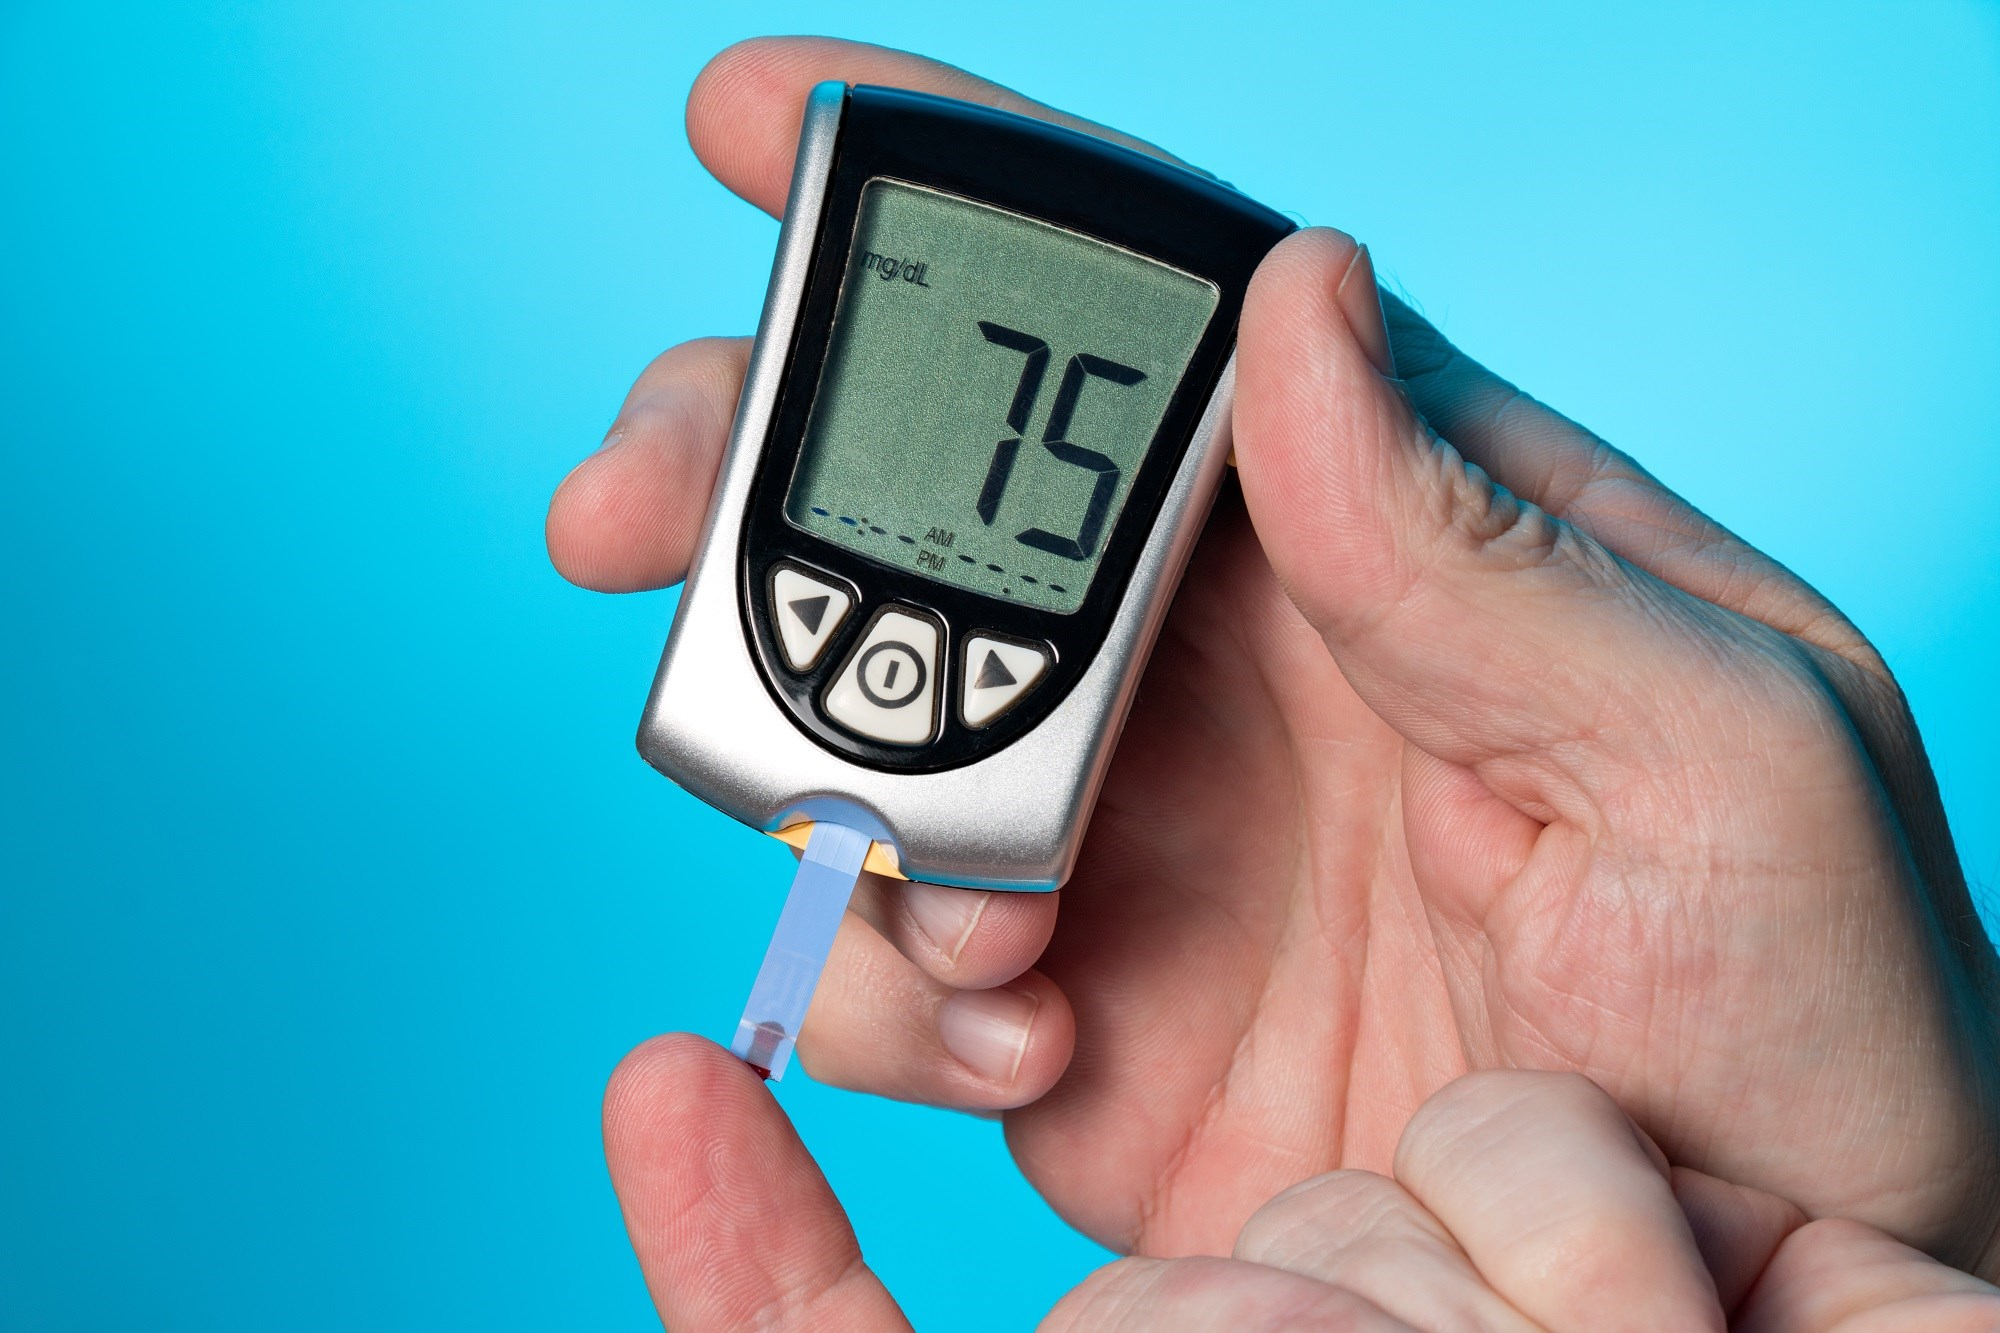 Technosphere inhaled insulin has a rapid onset and lasts for approximately 2 hours.